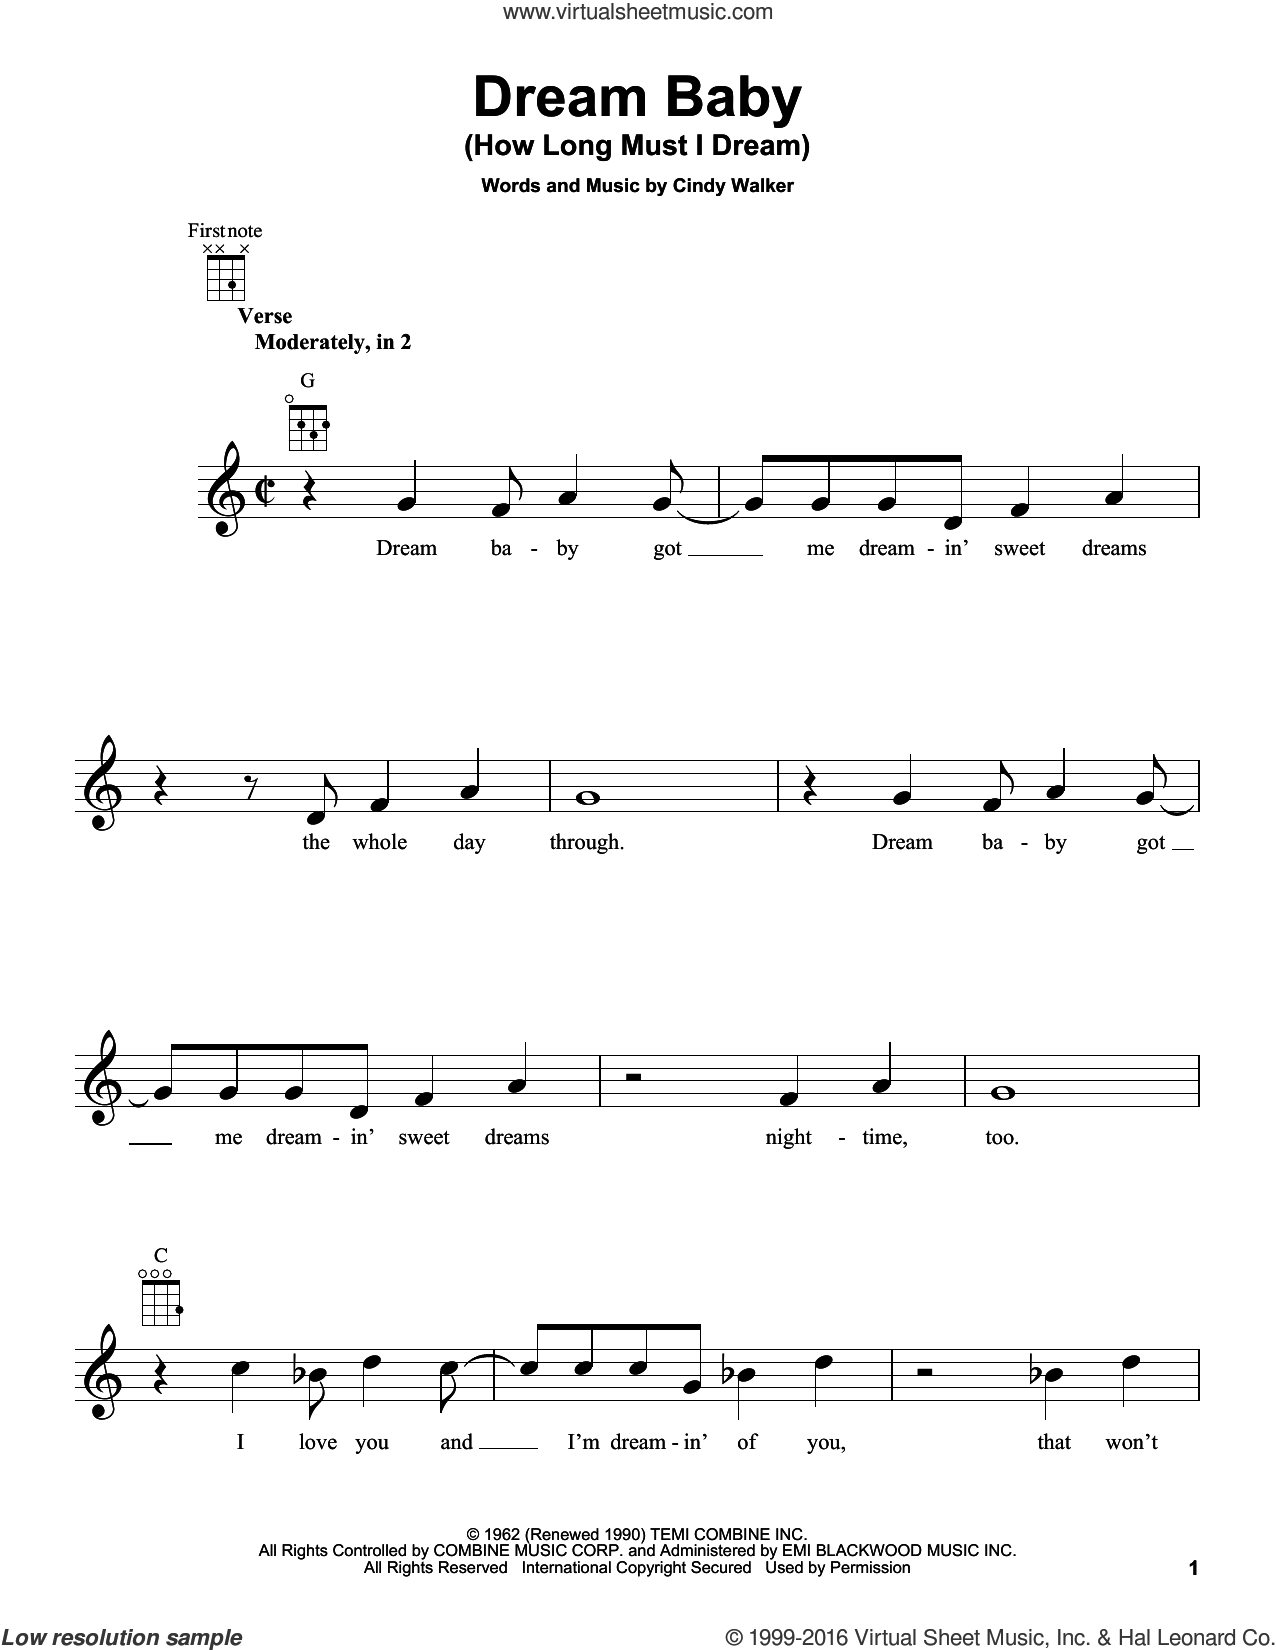 Dream Baby (How Long Must I Dream) sheet music for ukulele by Roy Orbison, Glen Campbell and Cindy Walker, intermediate